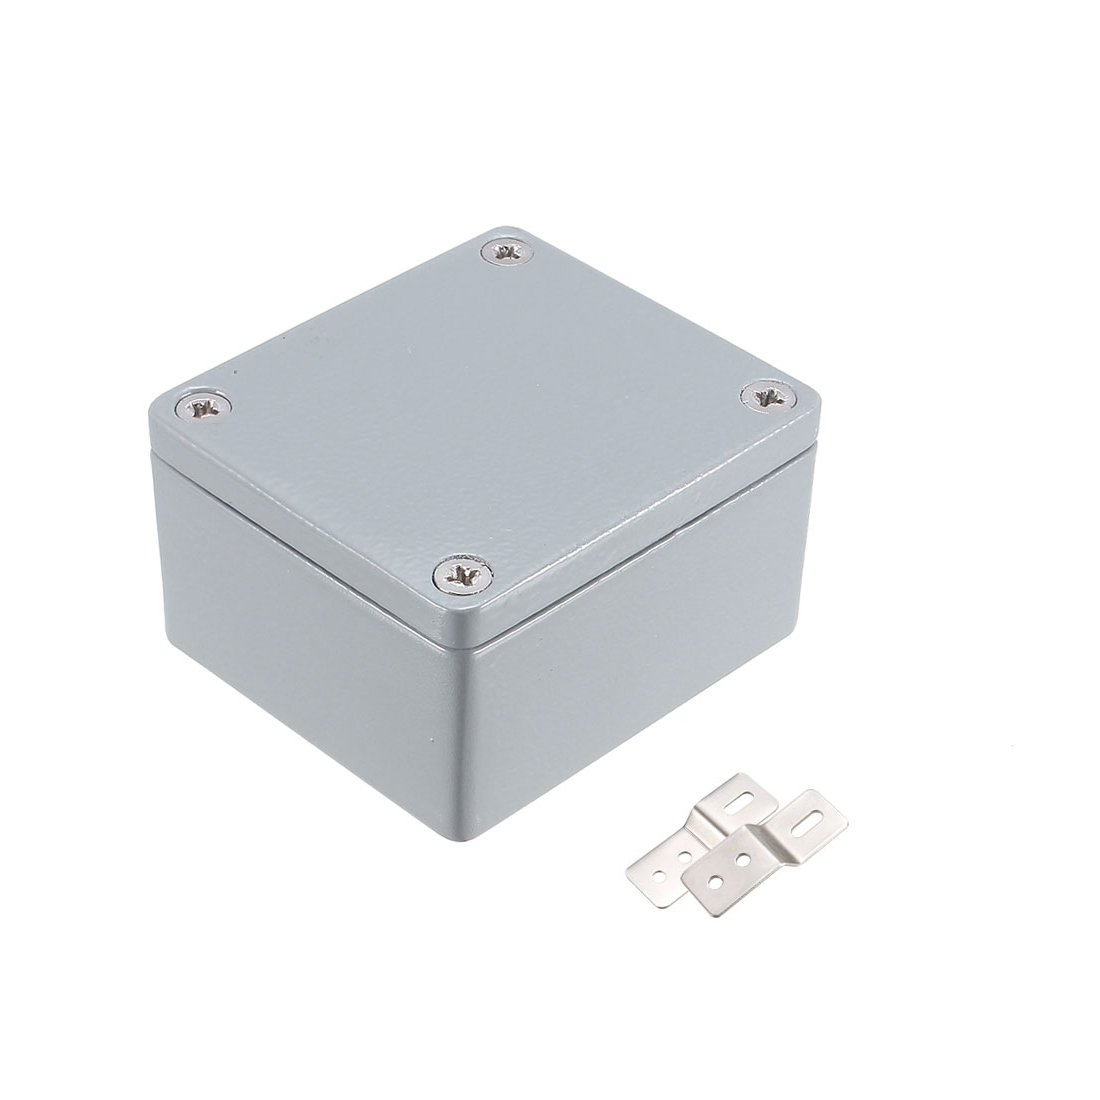 "2.5""x2.3""x1.4""(64mmx58mmx35mm) Aluminum Junction Box Universal Electric Project Enclosure"